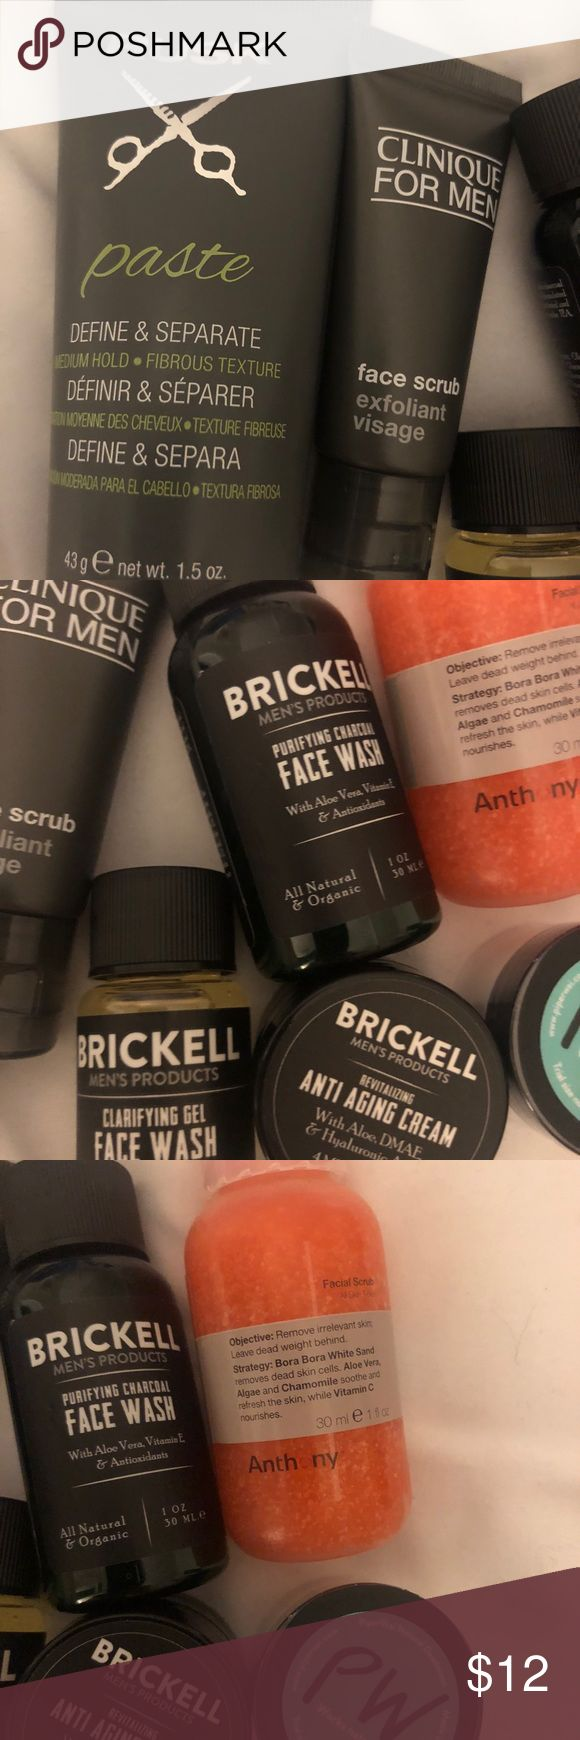 Men's Sephora Product Sample Lot Anthony Clinique Perfect travel sized premium products BRAND NEW  rusk Paste 1.5 oz Clinique for Men Face Scrub  .5 oz Brickell Face wash 1oz Brickell Clarifying Face wash 15 ml Anthony Facial Scrub 1oz Piper Wai natural deodorant Brickell anti aging cream 4ml Clinique Makeup